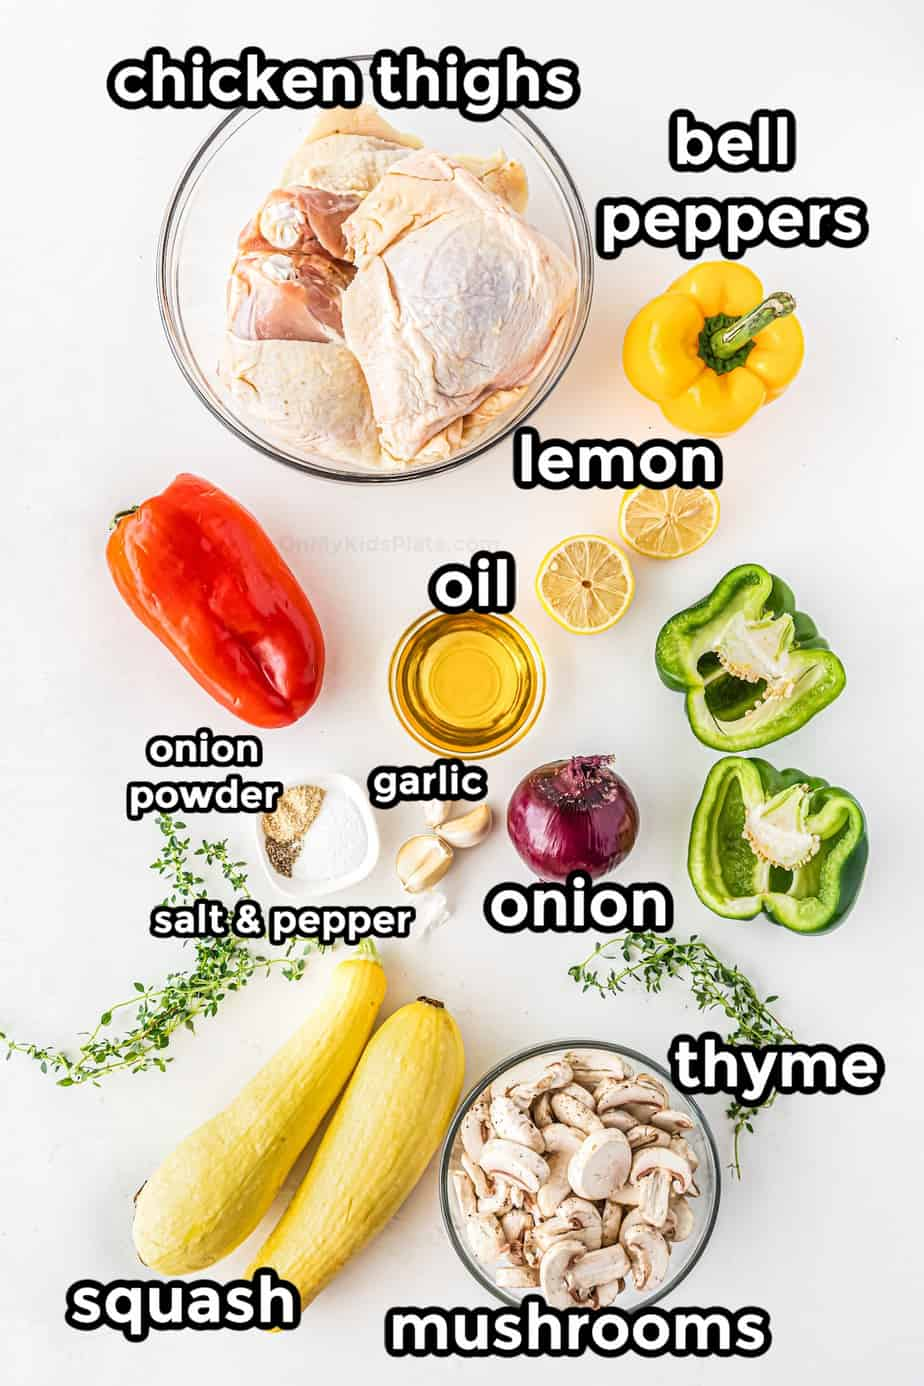 Ingredients for Baked Chicken Thighs with Squash and Peppers